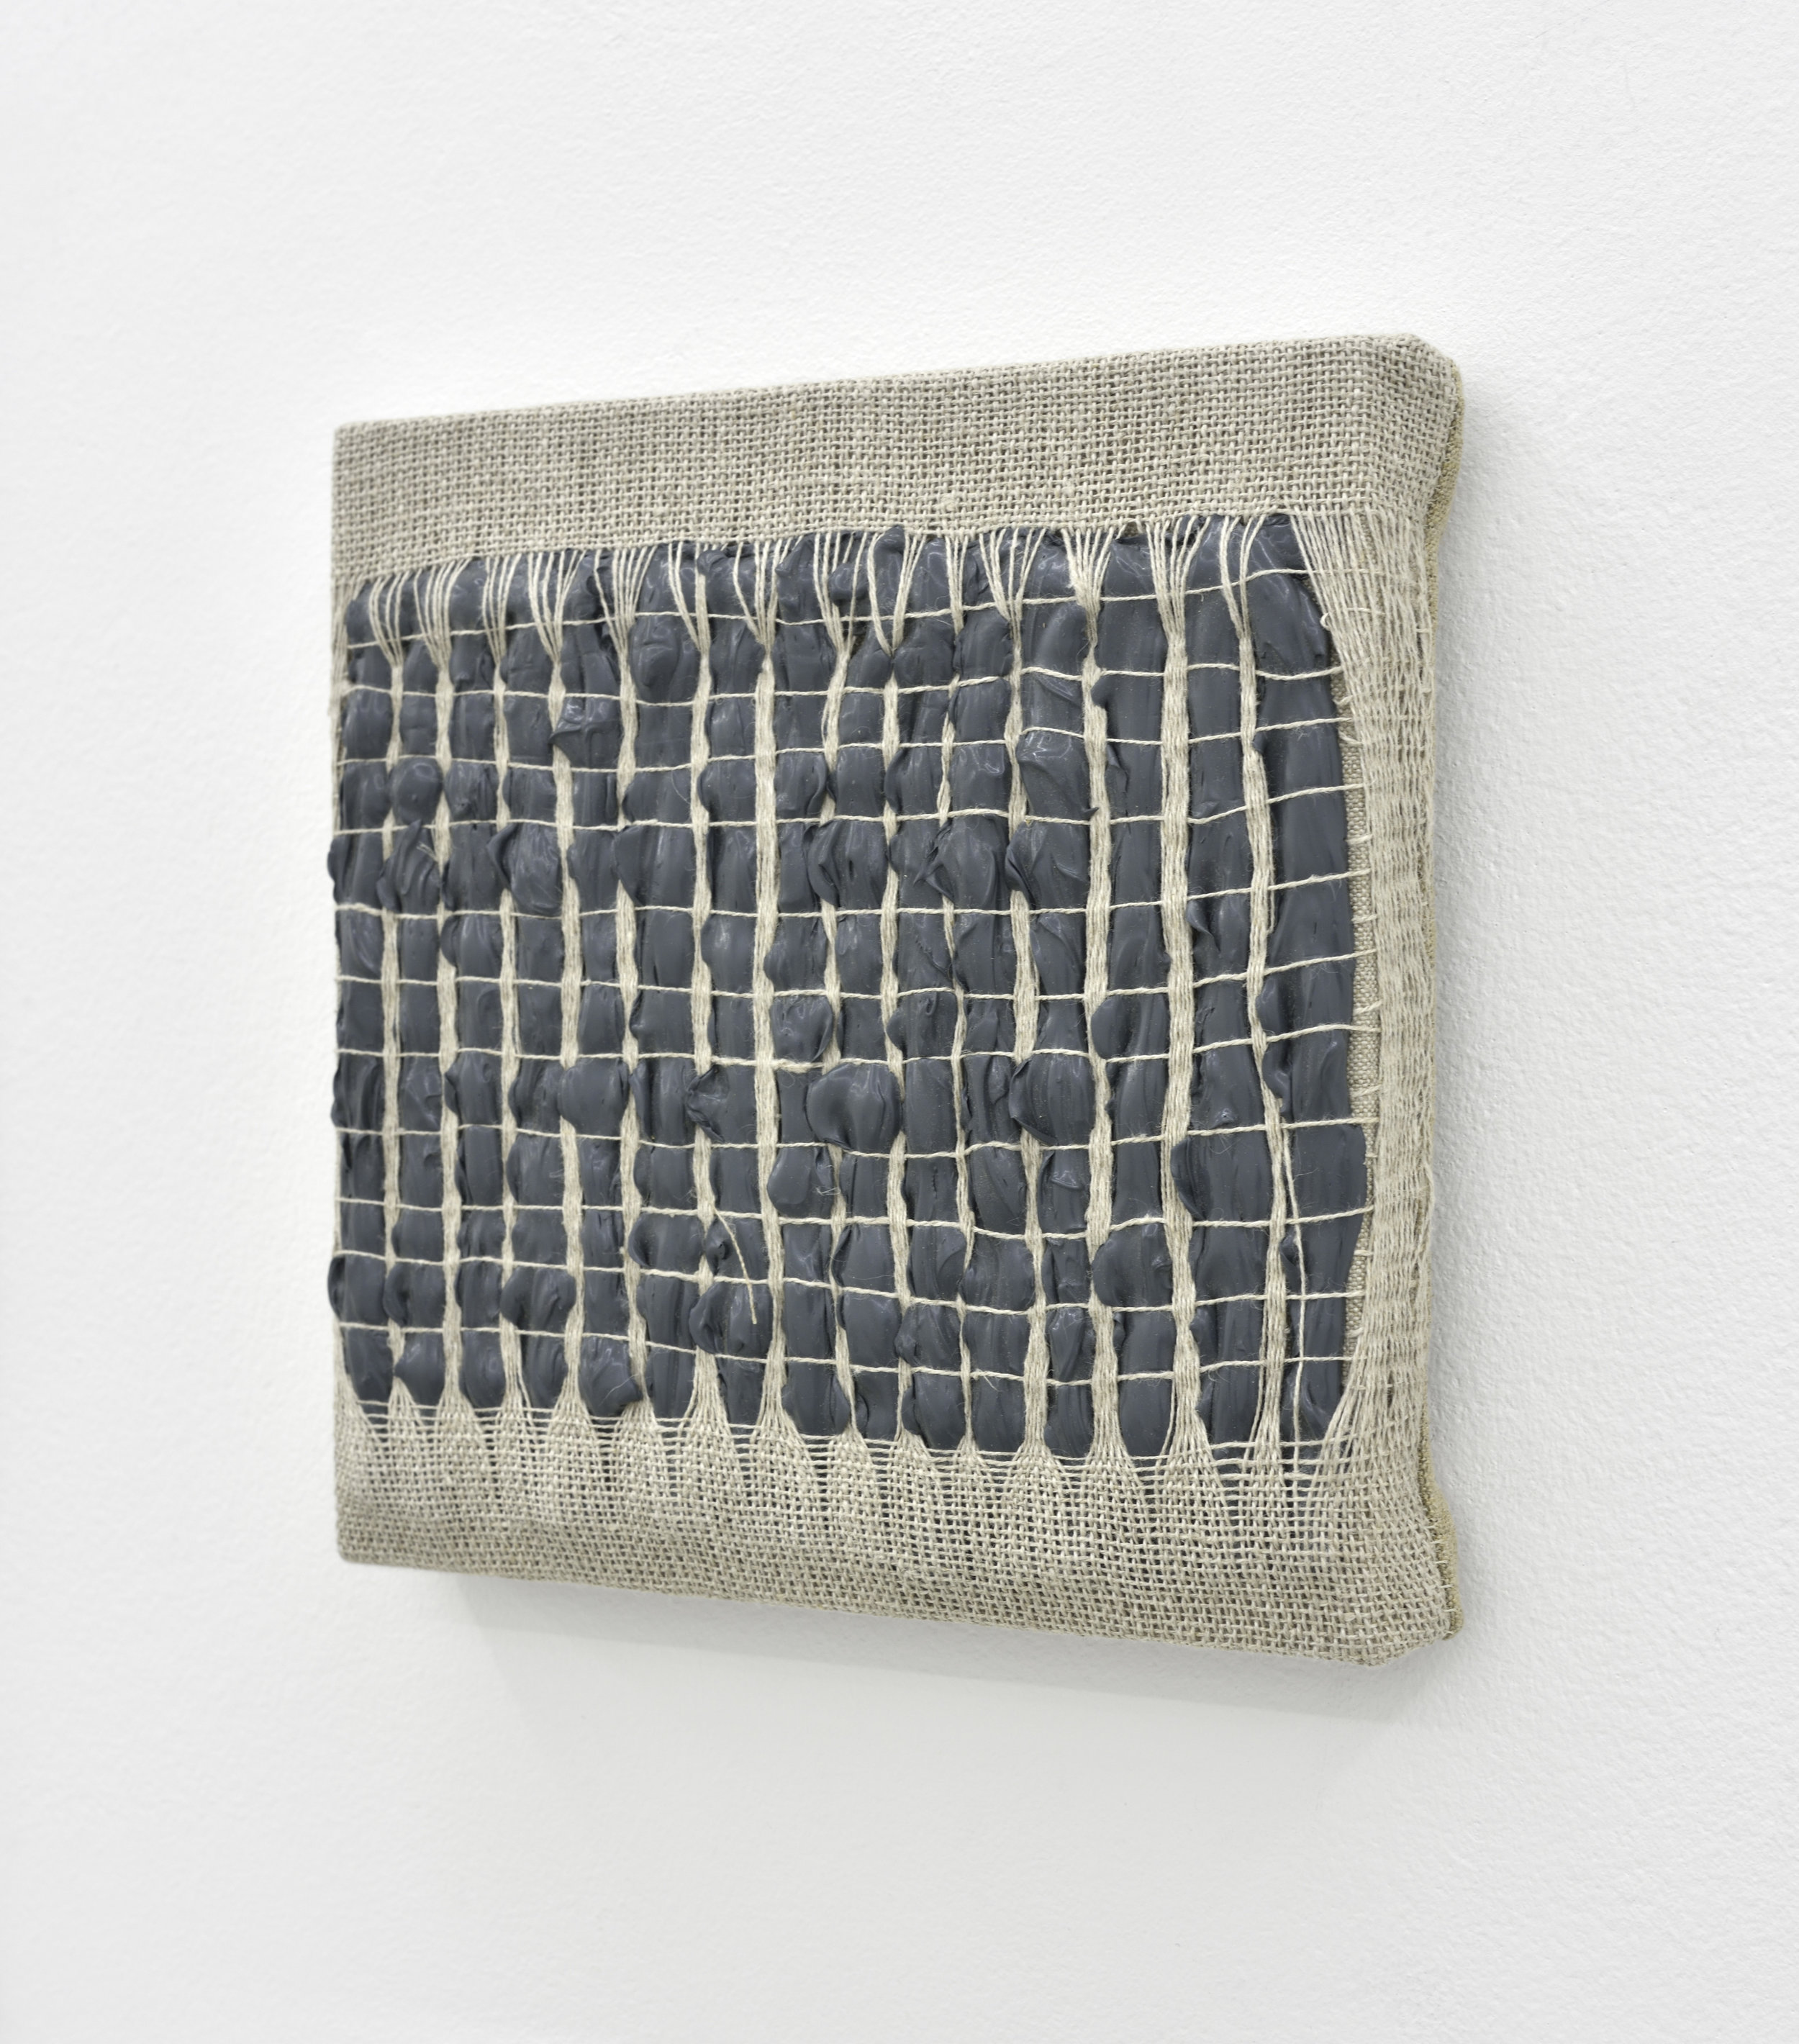 Weaving Density Study, Stage #3 (Gray), 2017 acrylic paint woven through linen on panel 20 x 20 x 3,5 cm - 7 7/8 x 7 7/8 x 1 3/8 inches